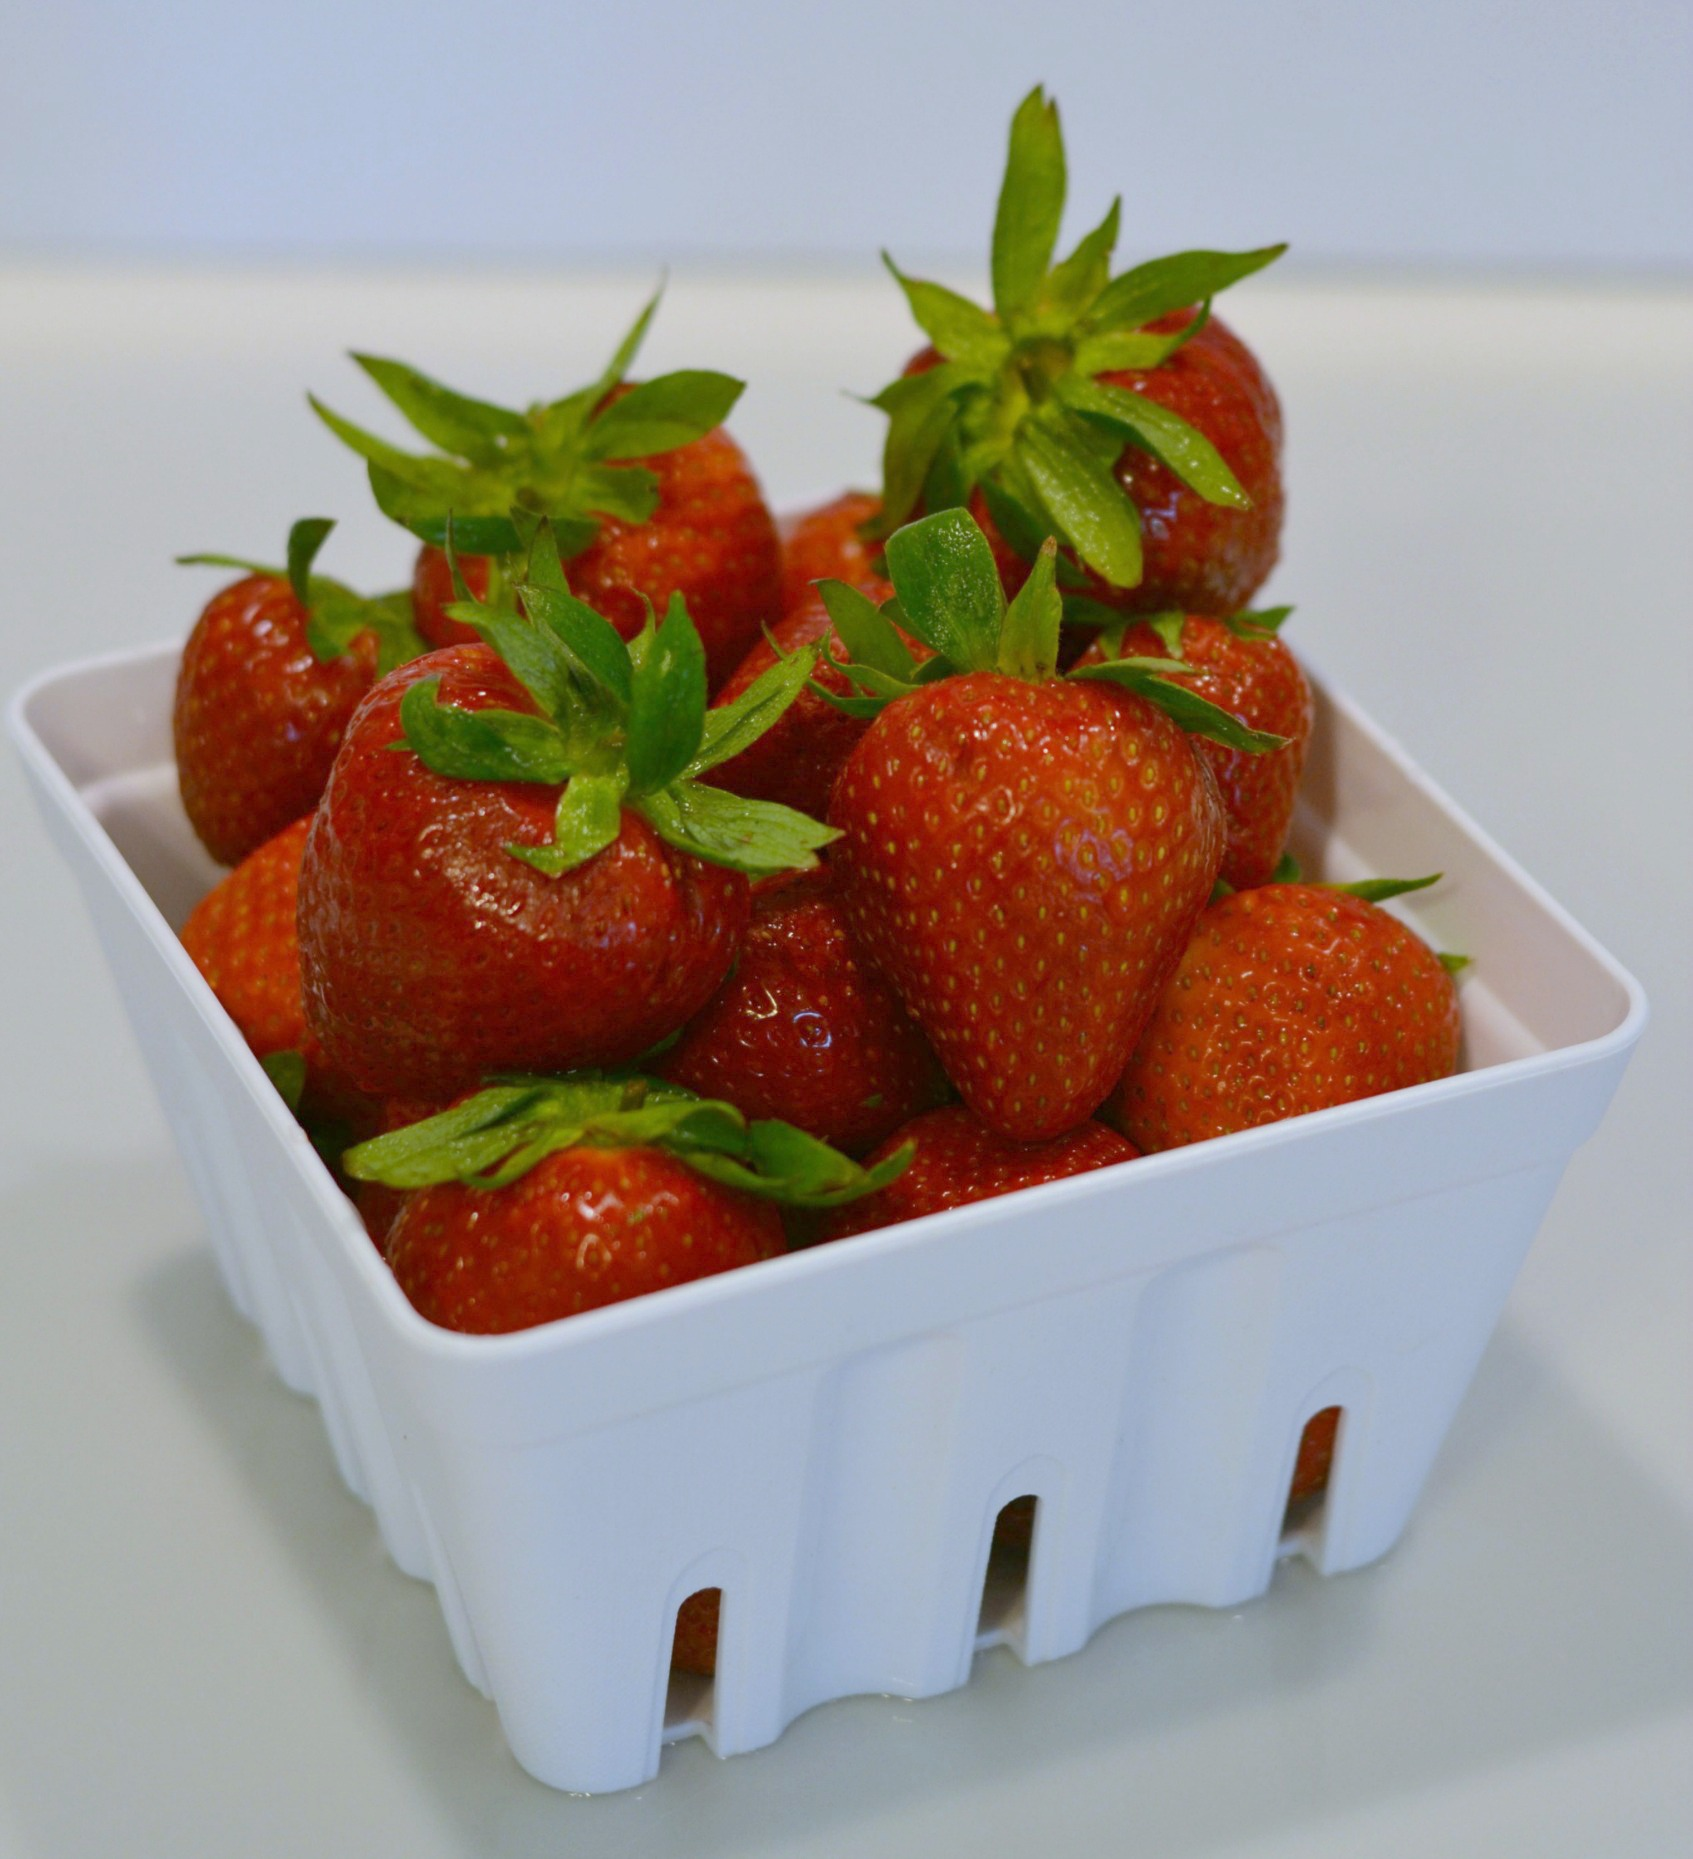 Strawberries 2